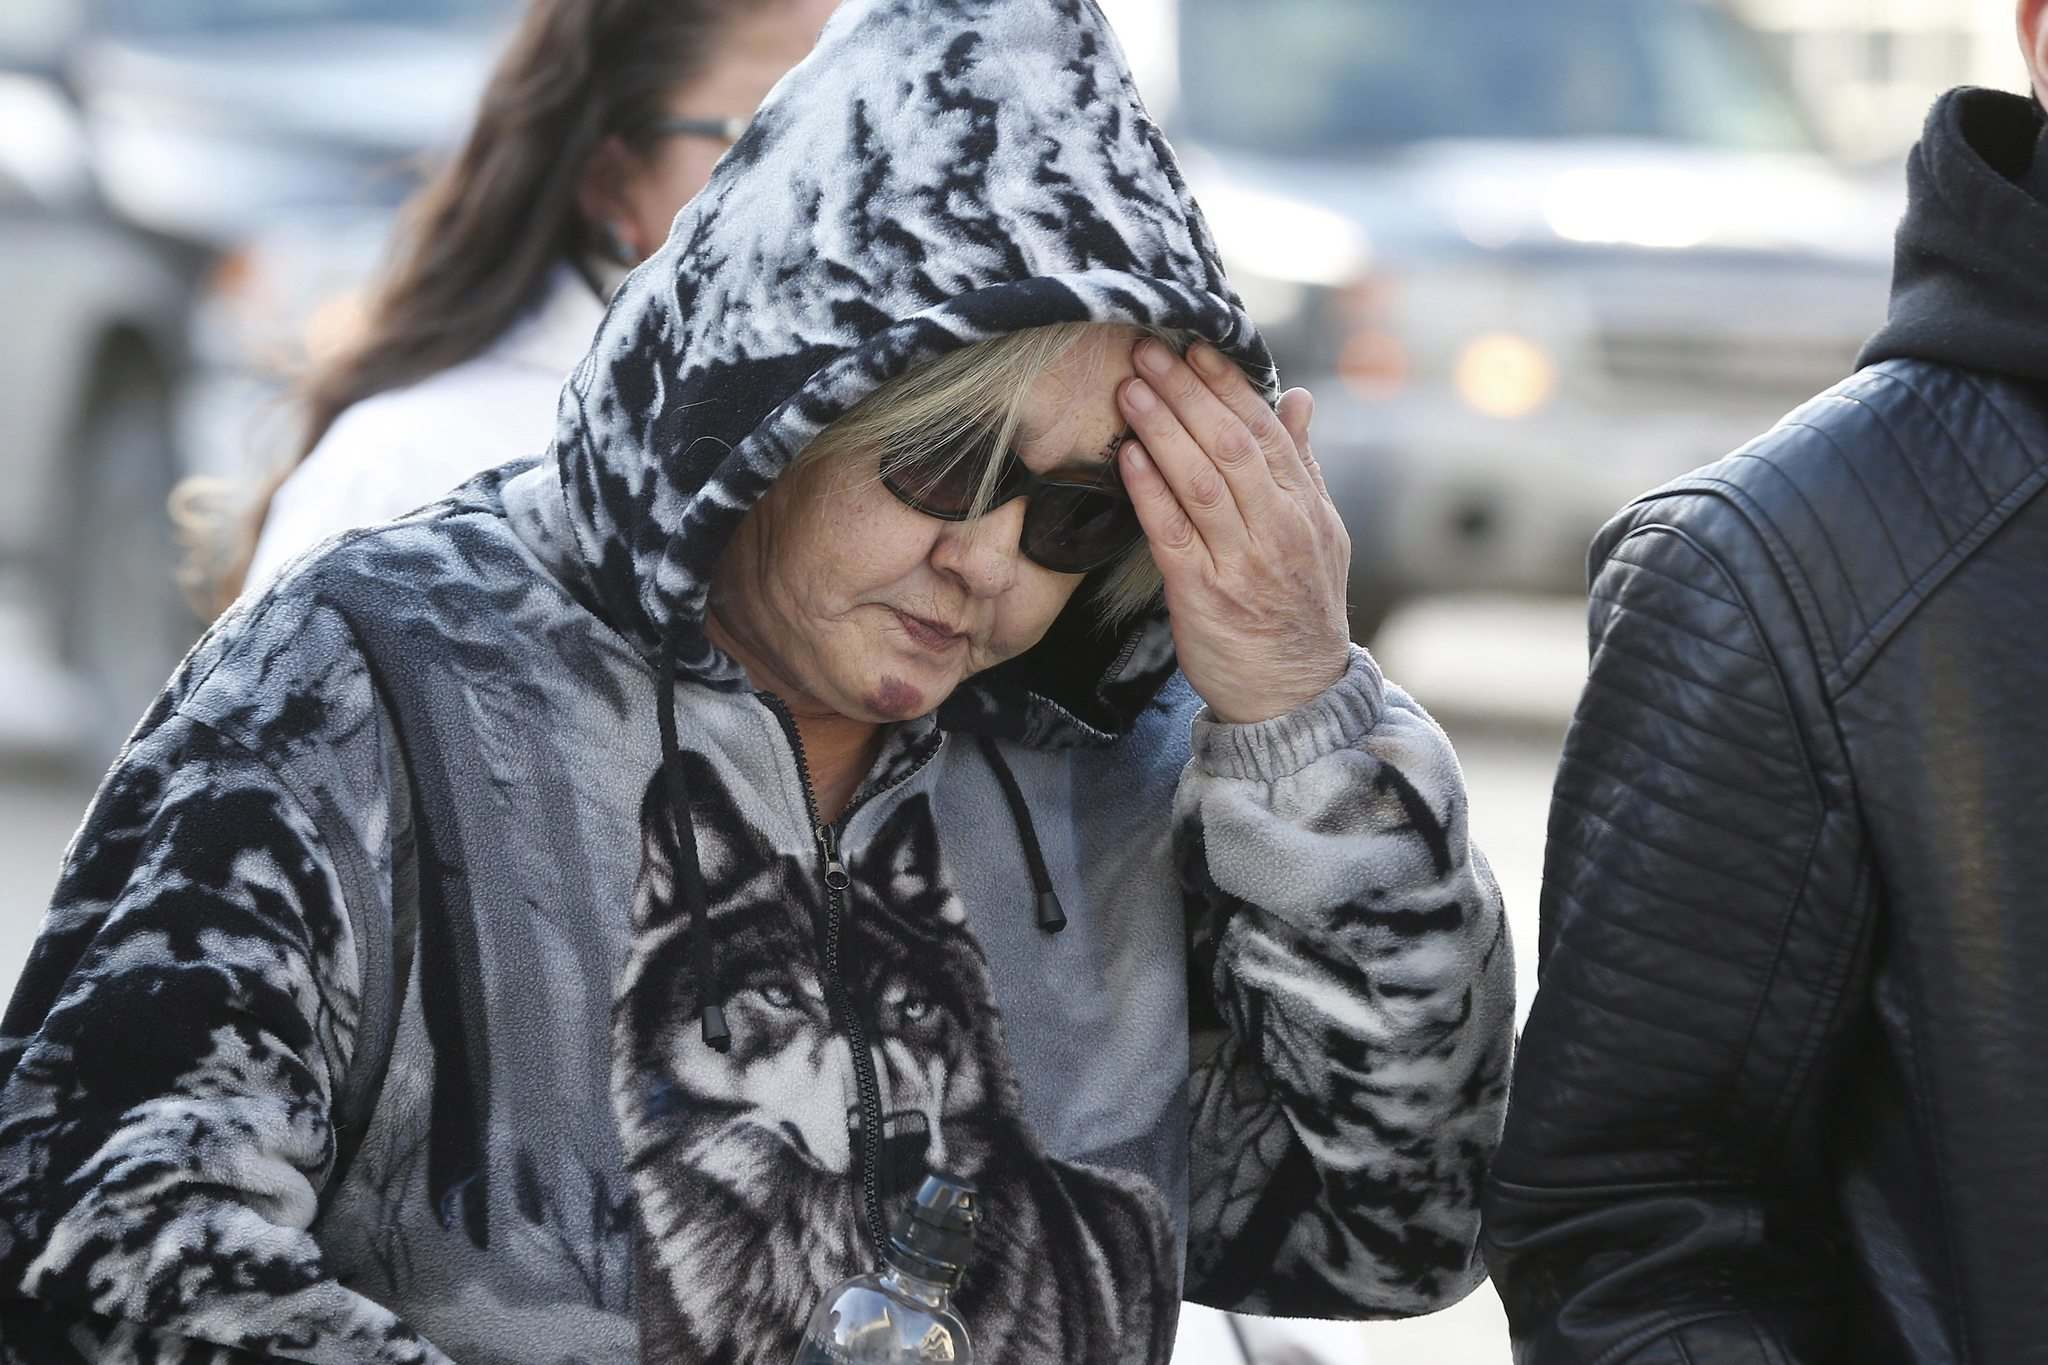 <p>Thelma Favel, Tina Fontaine&rsquo;s great-aunt and the woman who raised her, says she will continue to work toward change despite the acquittal of the man accused of killing the 15-year-old.</p>